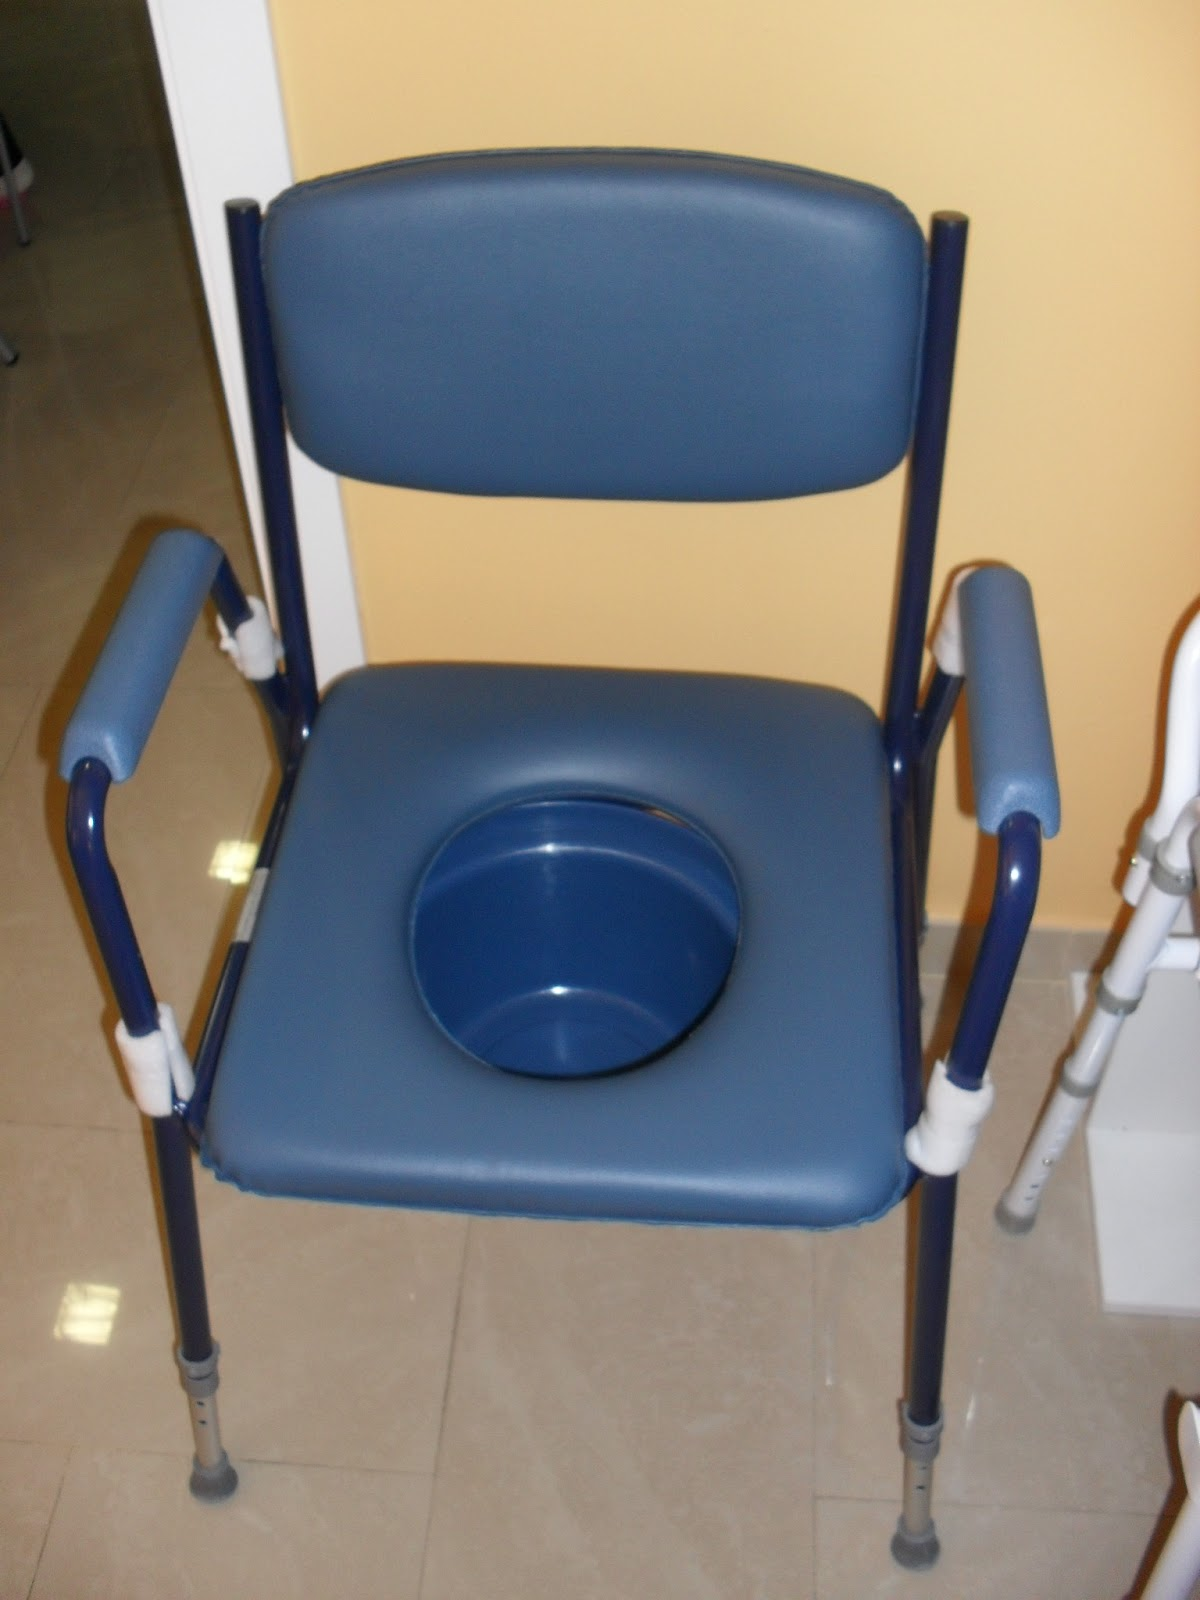 Silla con wc modelo club regulable en altura perfecta for Sillas para water